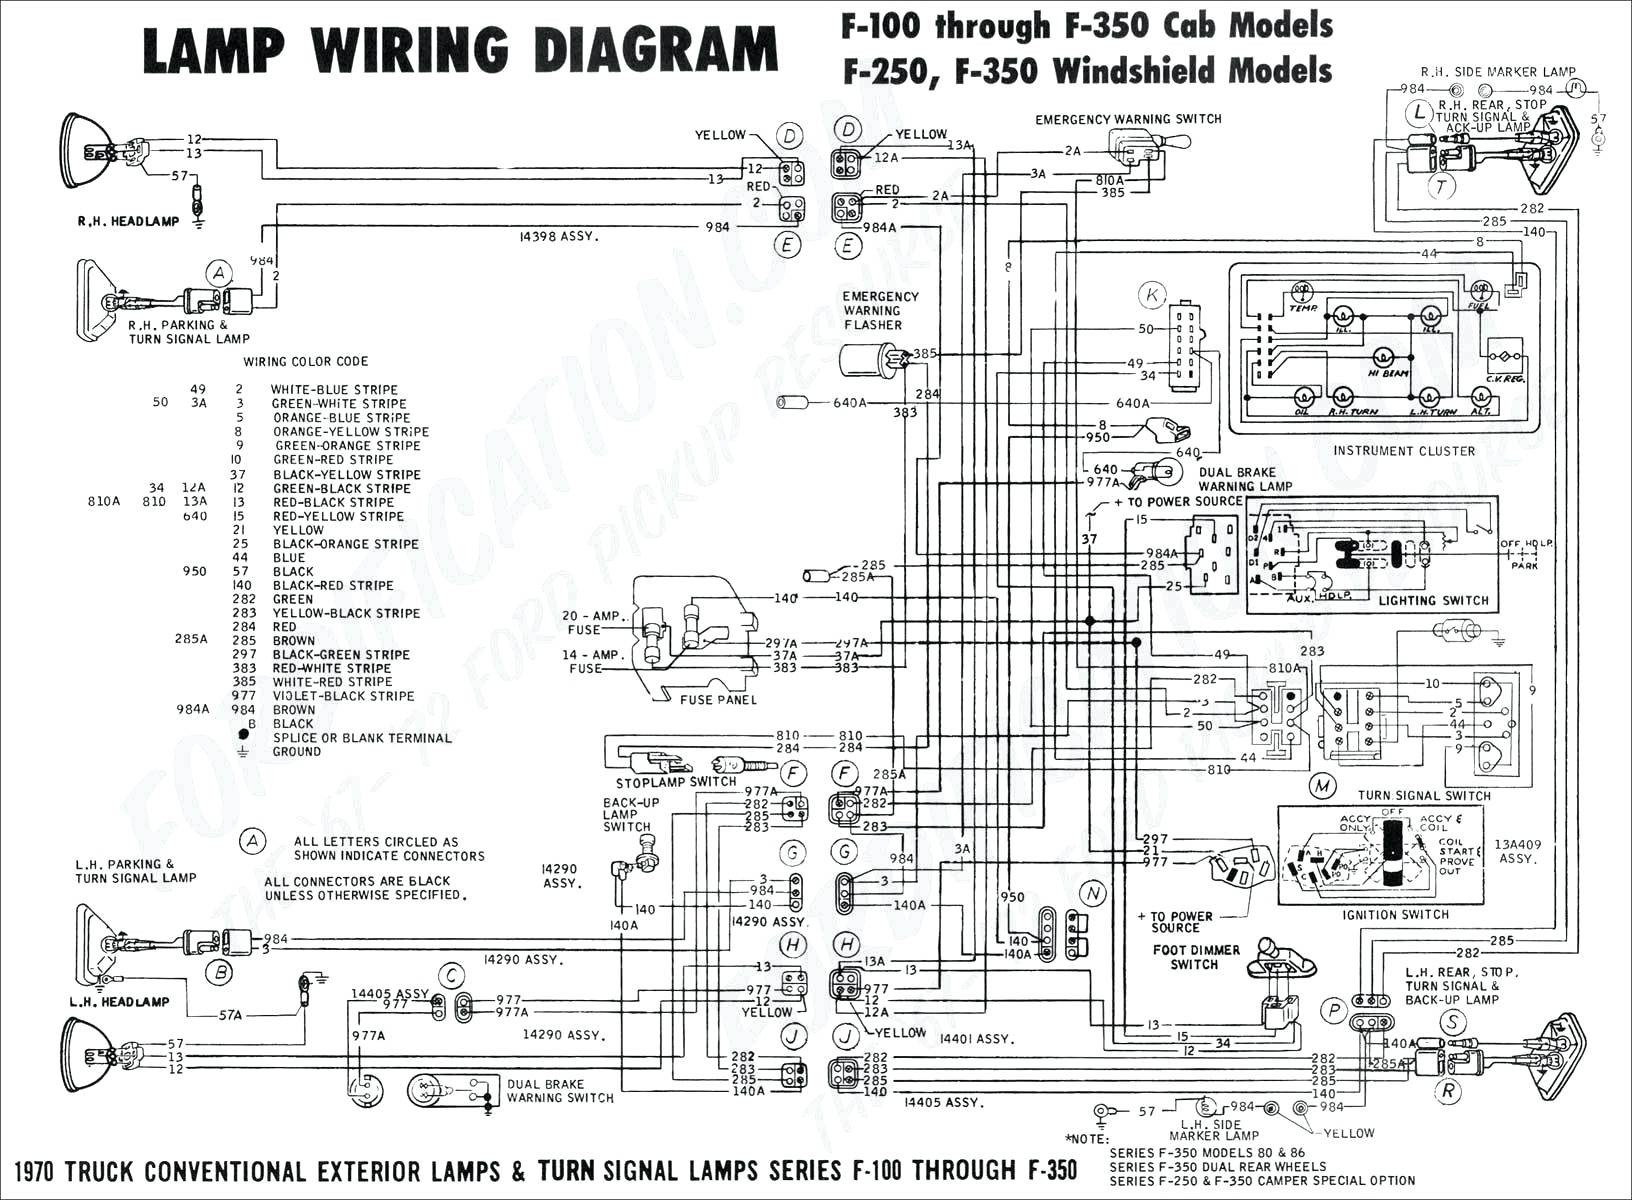 Ford Abs System Wiring Diagram | Wiring Schematic Diagram Abs Wiring Diagram on